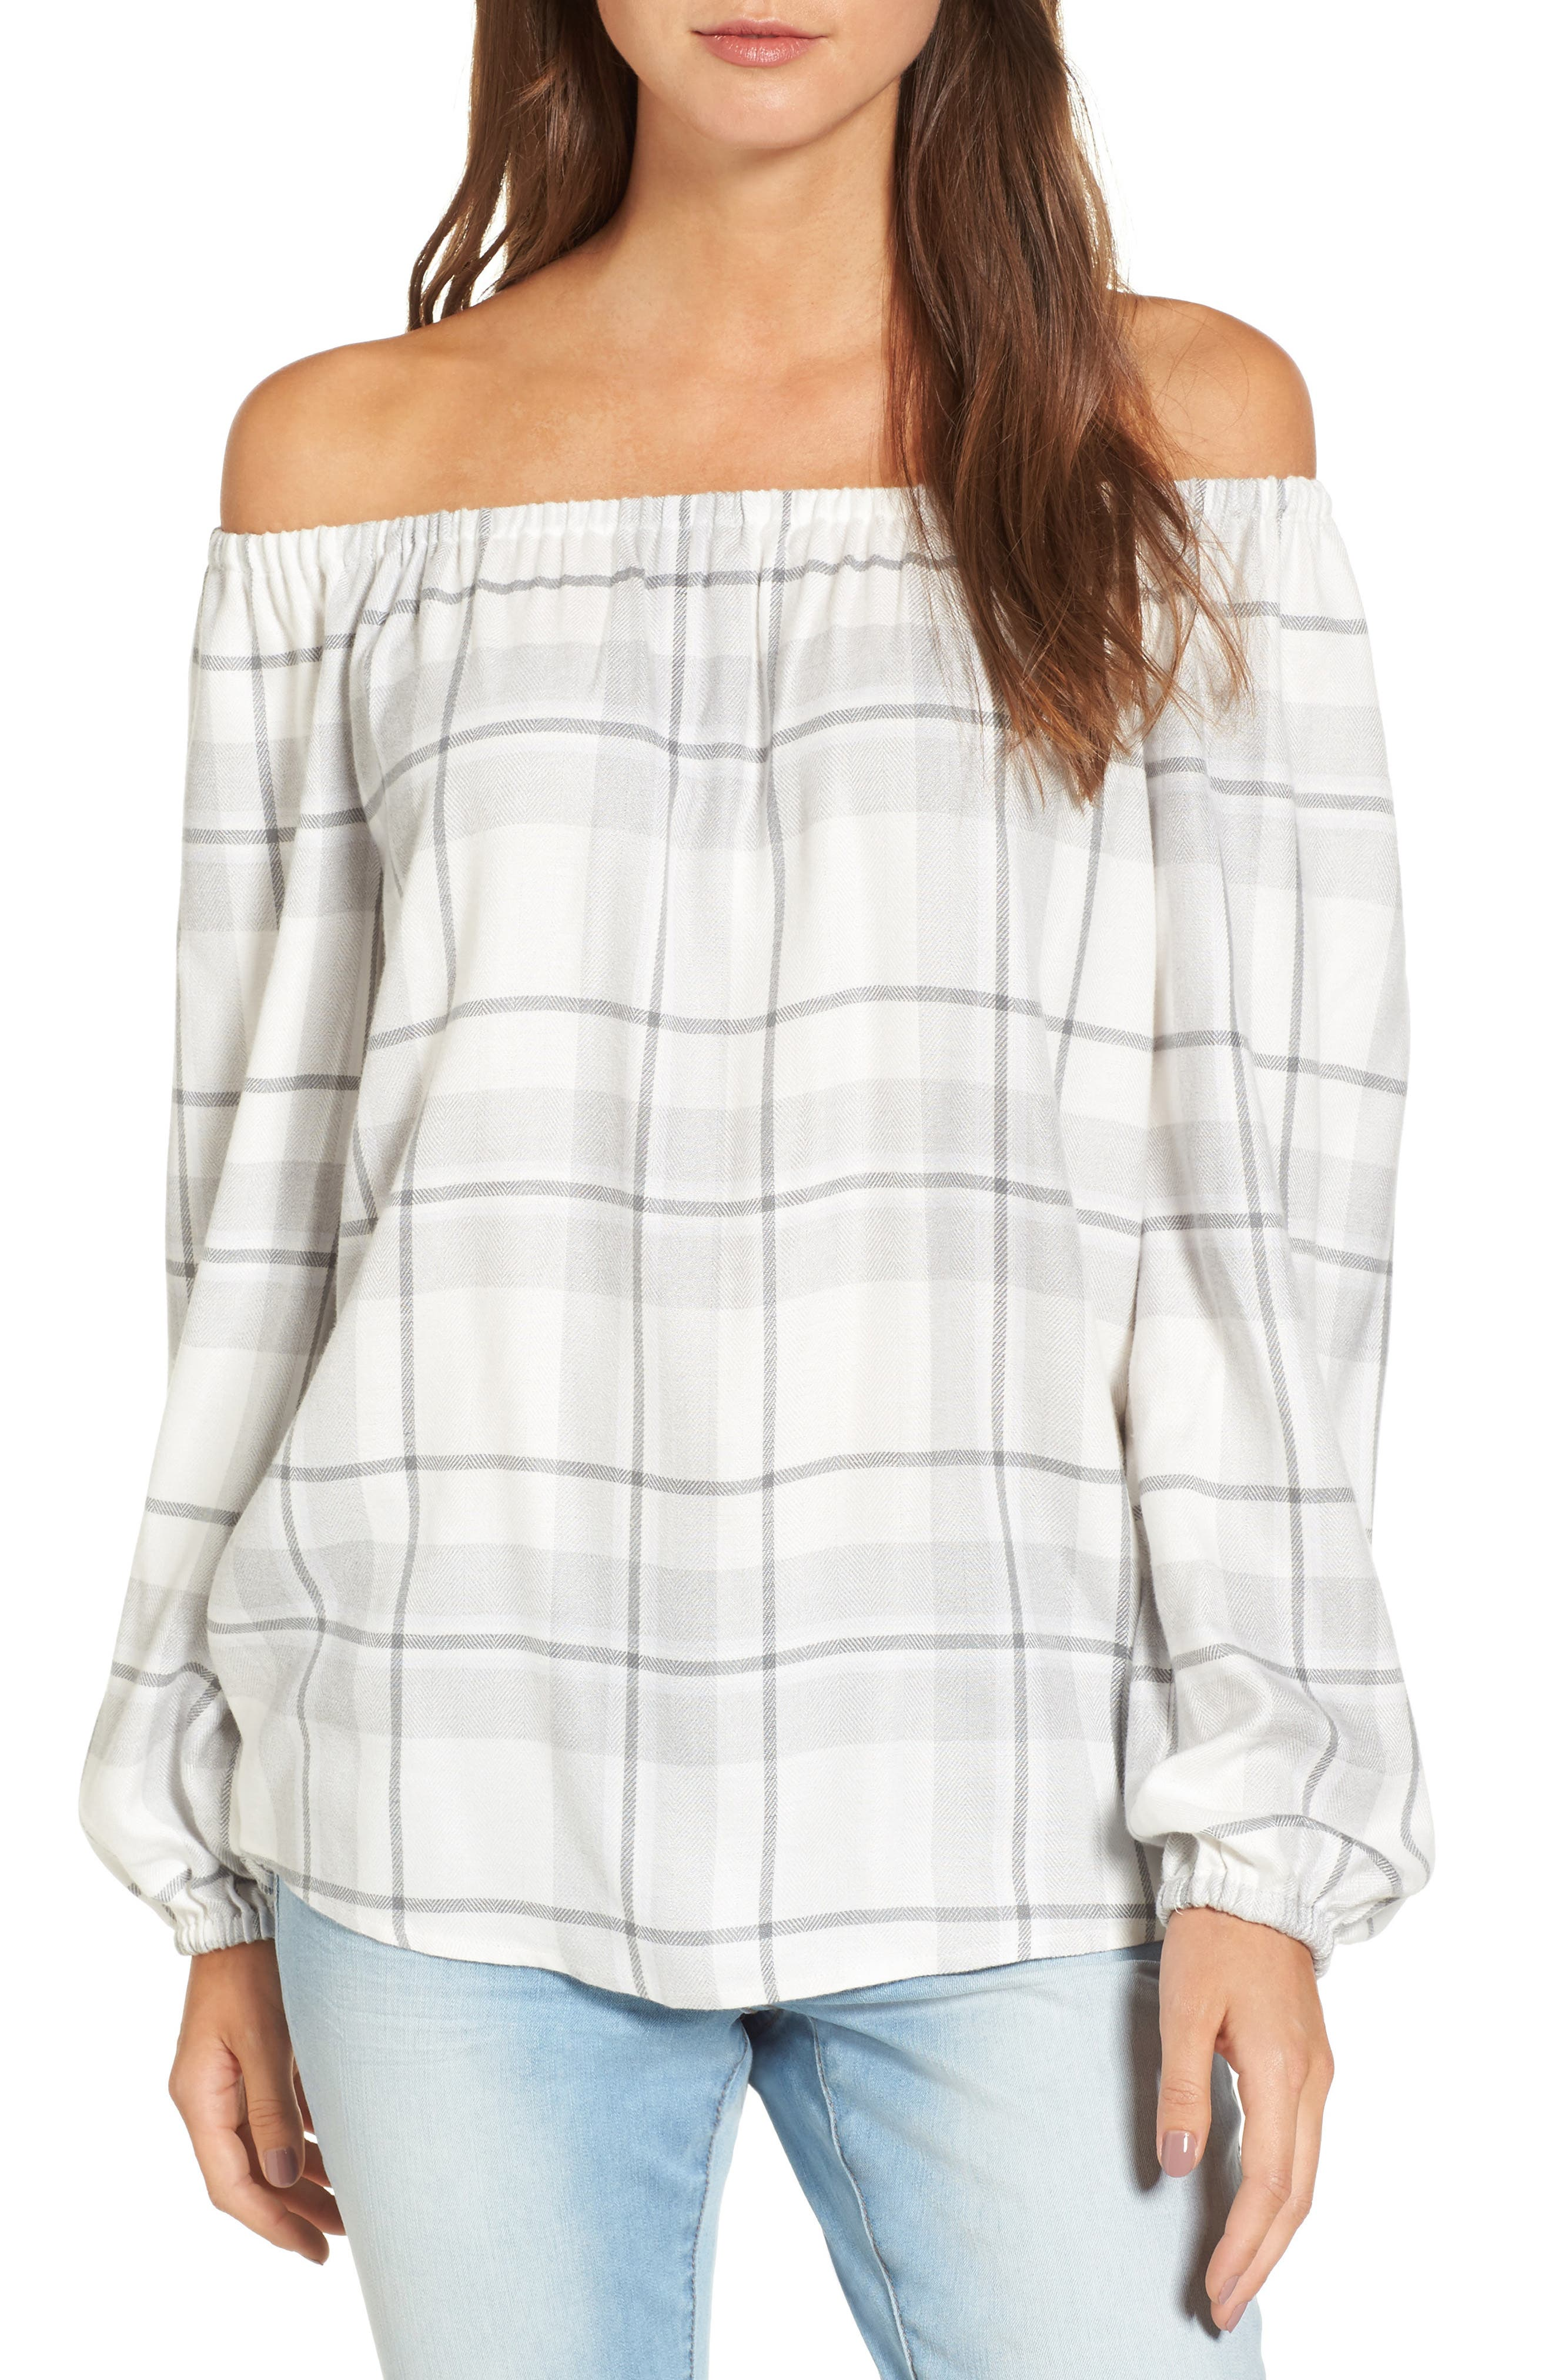 Alternate Image 1 Selected - Two by Vince Camuto Off the Shoulder Plaid Blouse (Regular & Petite)